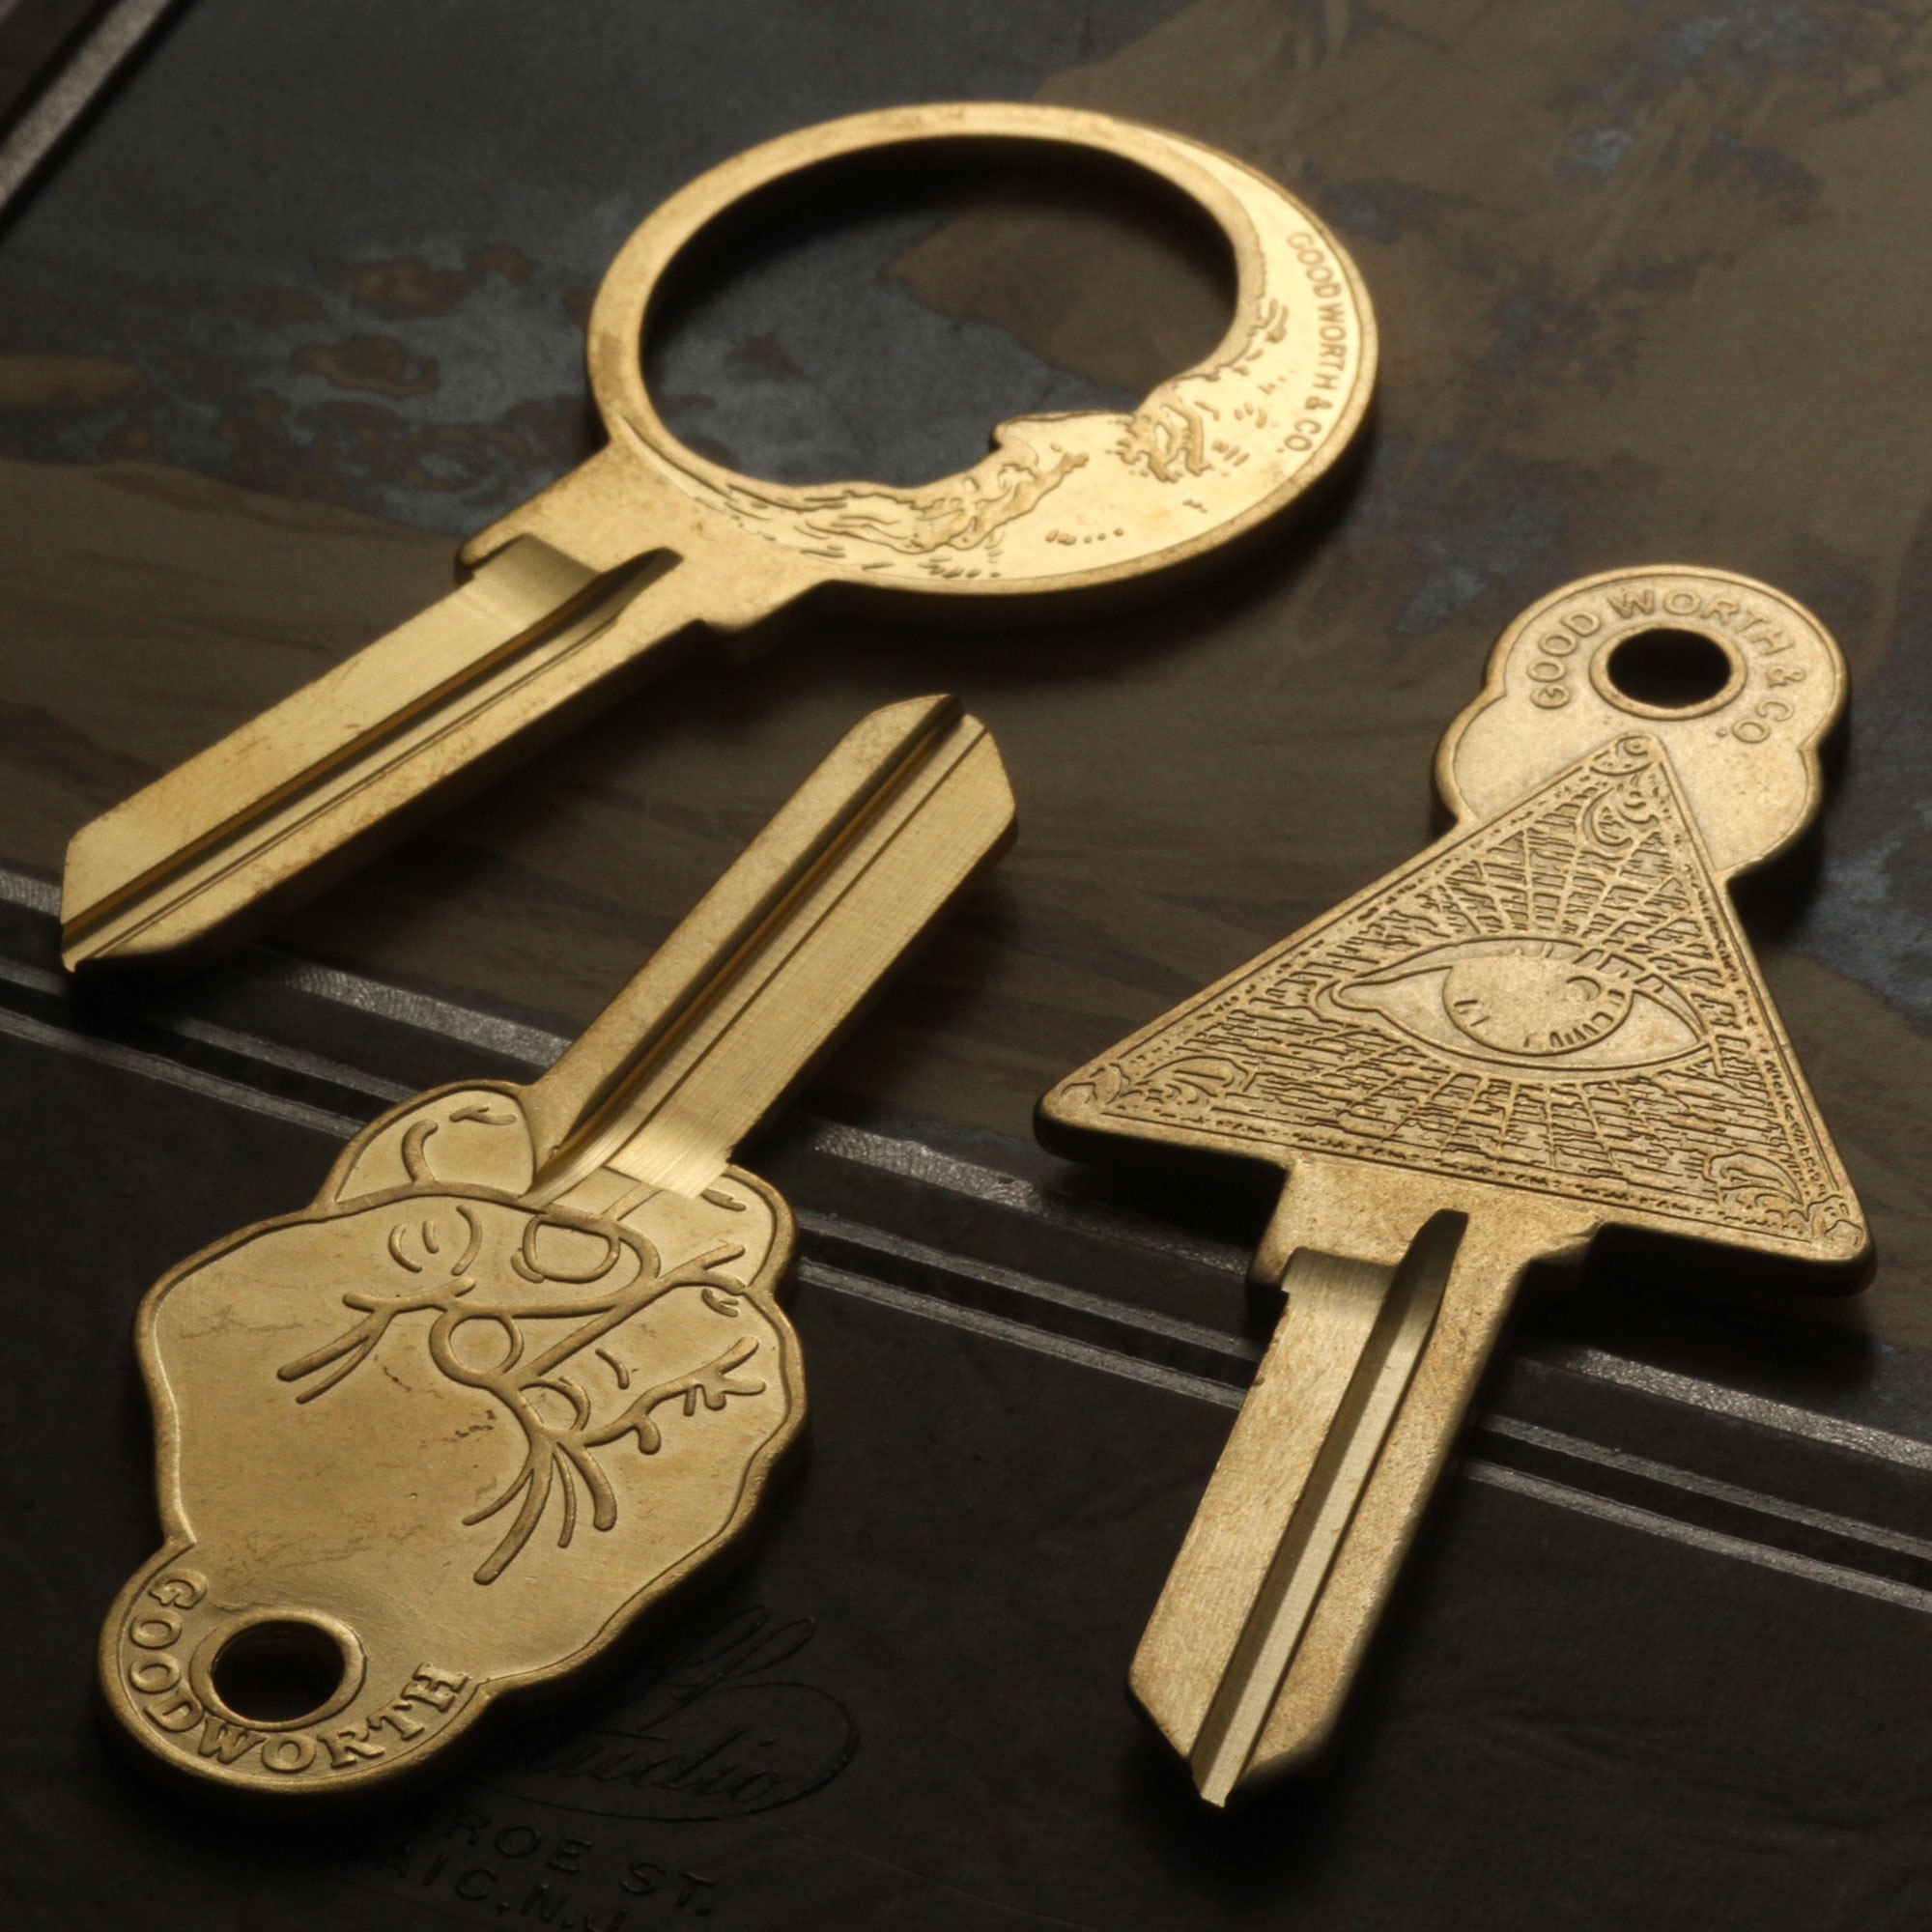 how to get into office door lost key